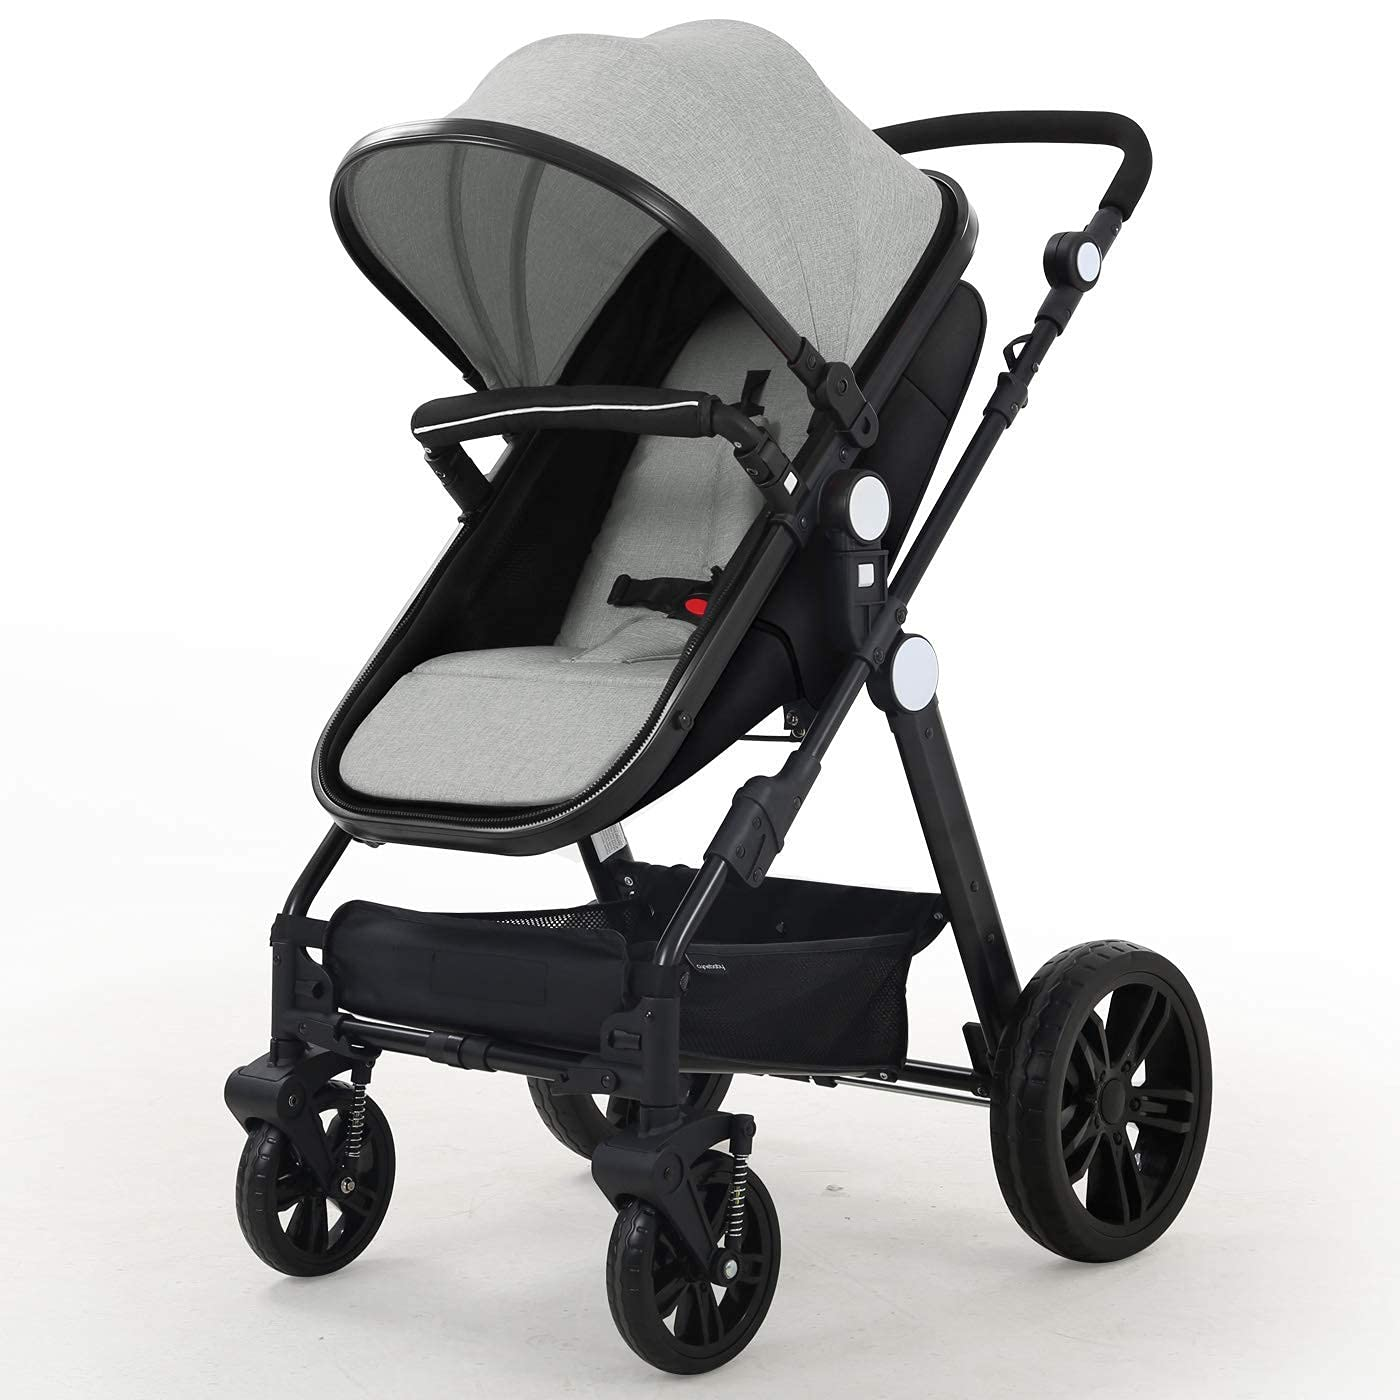 Baby Stroller Newborn Carriage Infant Reversible Bassinet to Luxury Toddler Vista Seat for Boy Girl Compact Single All Terrain Babies Pram Strollers Add Stroller Cover, Cup Holder, Net……